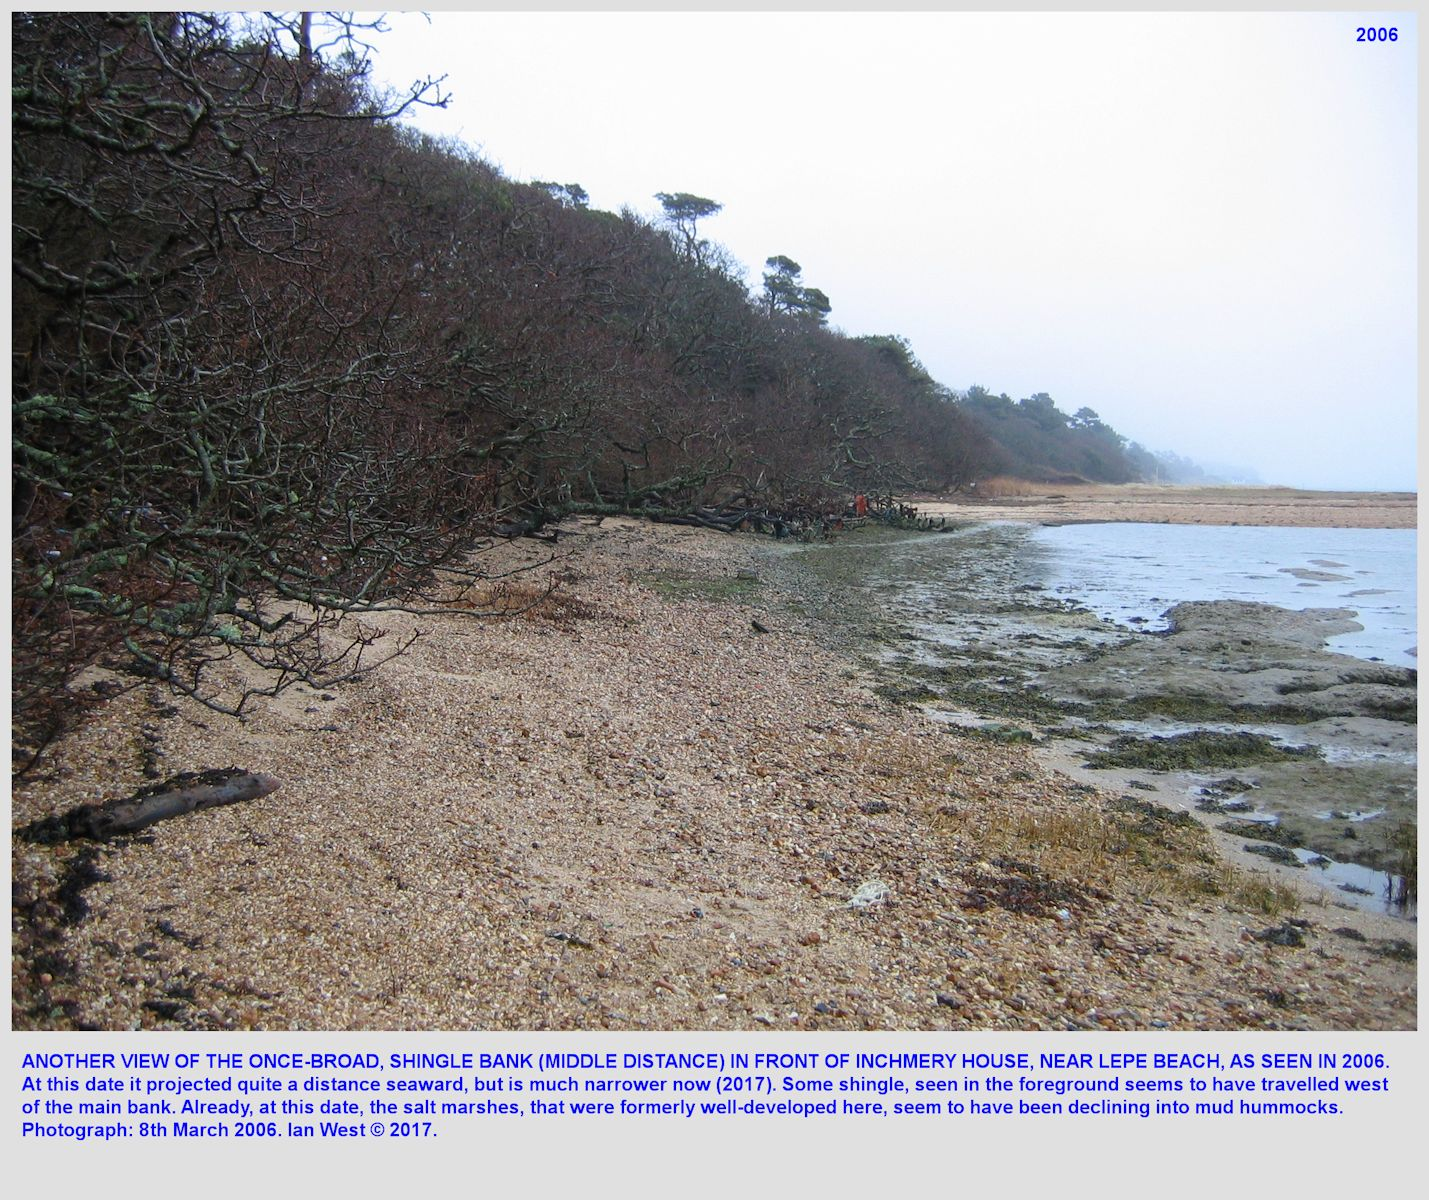 Another view of the formerly-wide shingle beach in front of Inchmery House, near Lepe Beach, Hampshire, as seen in 2006 before it was narrowed